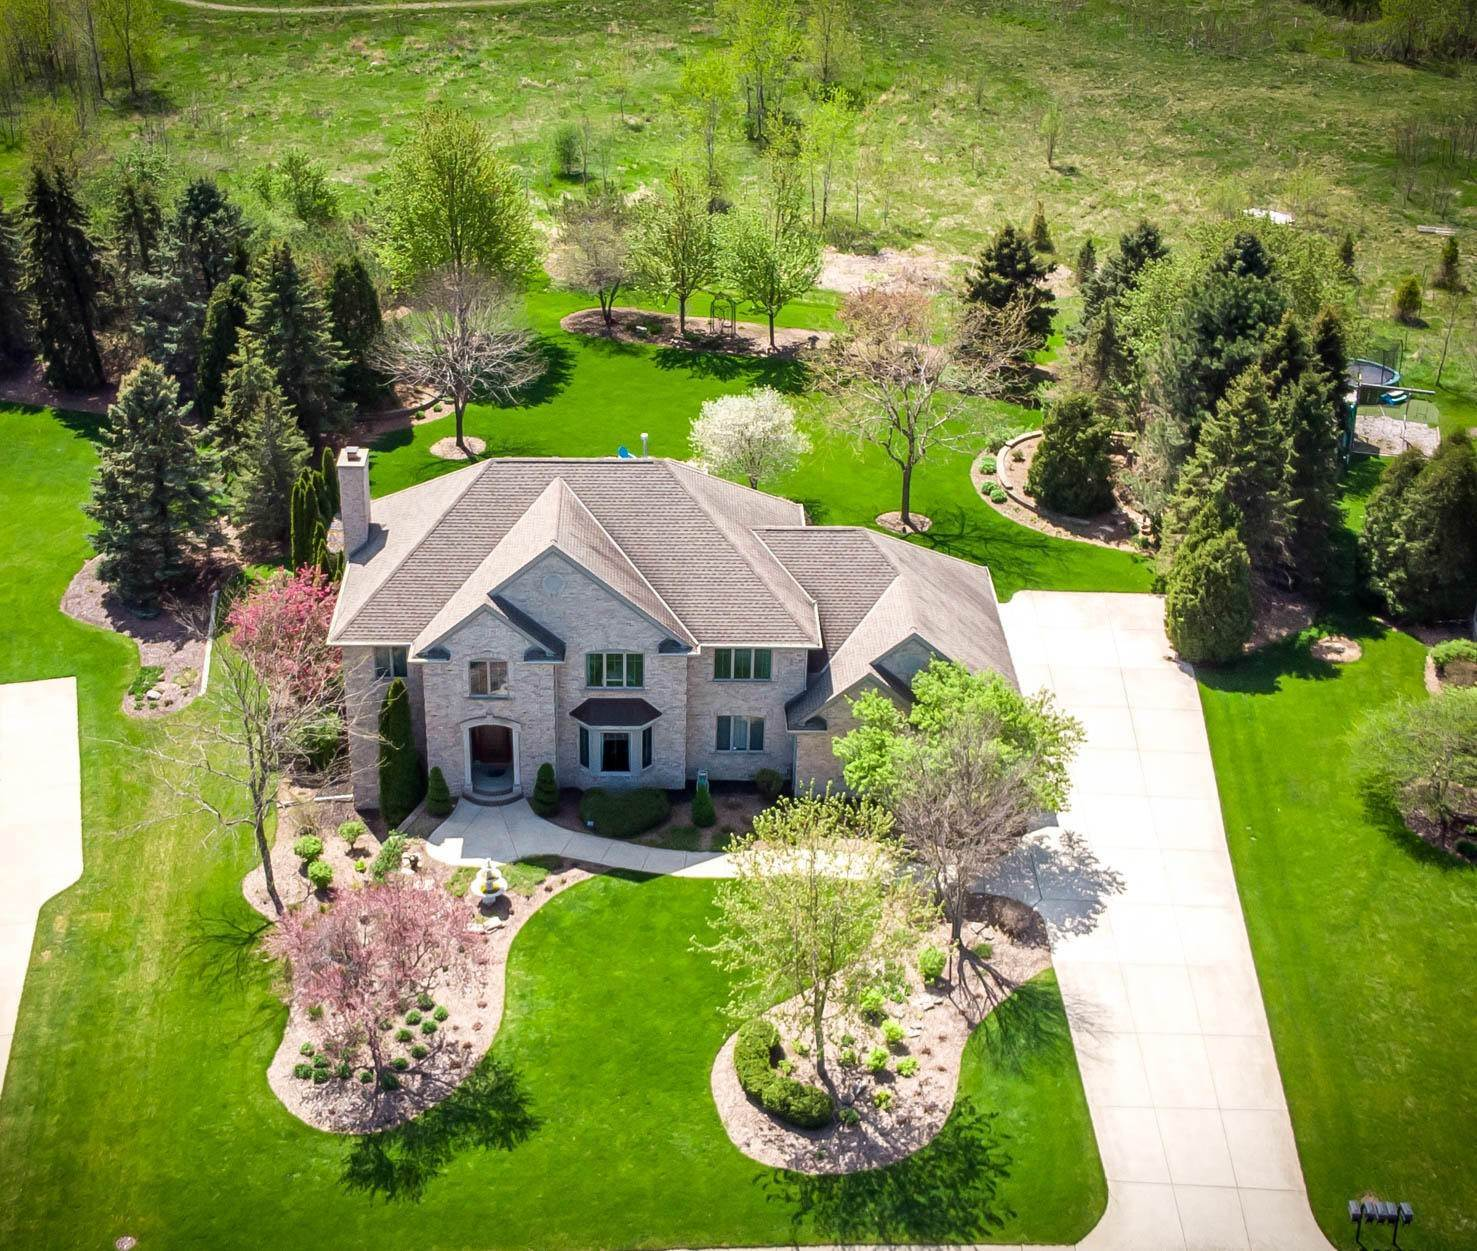 Single Family Homes for Sale at 1095 Auburn Drive Brookfield, Wisconsin 53045 United States